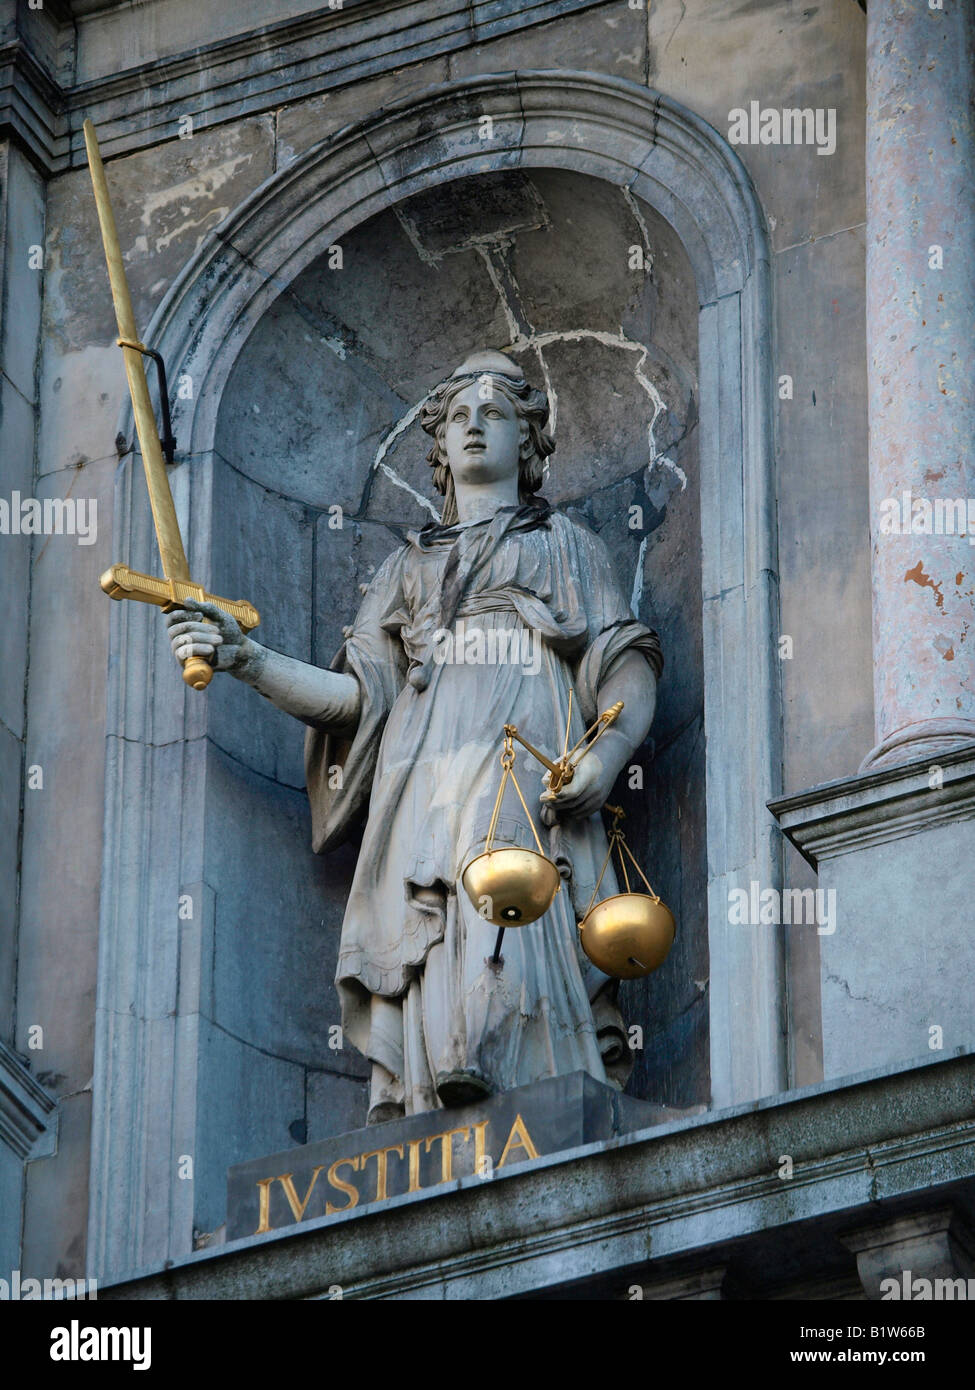 Lady Justice statue iustitia with golden scales of justice and sword Antwerp Flanders Belgium - Stock Image